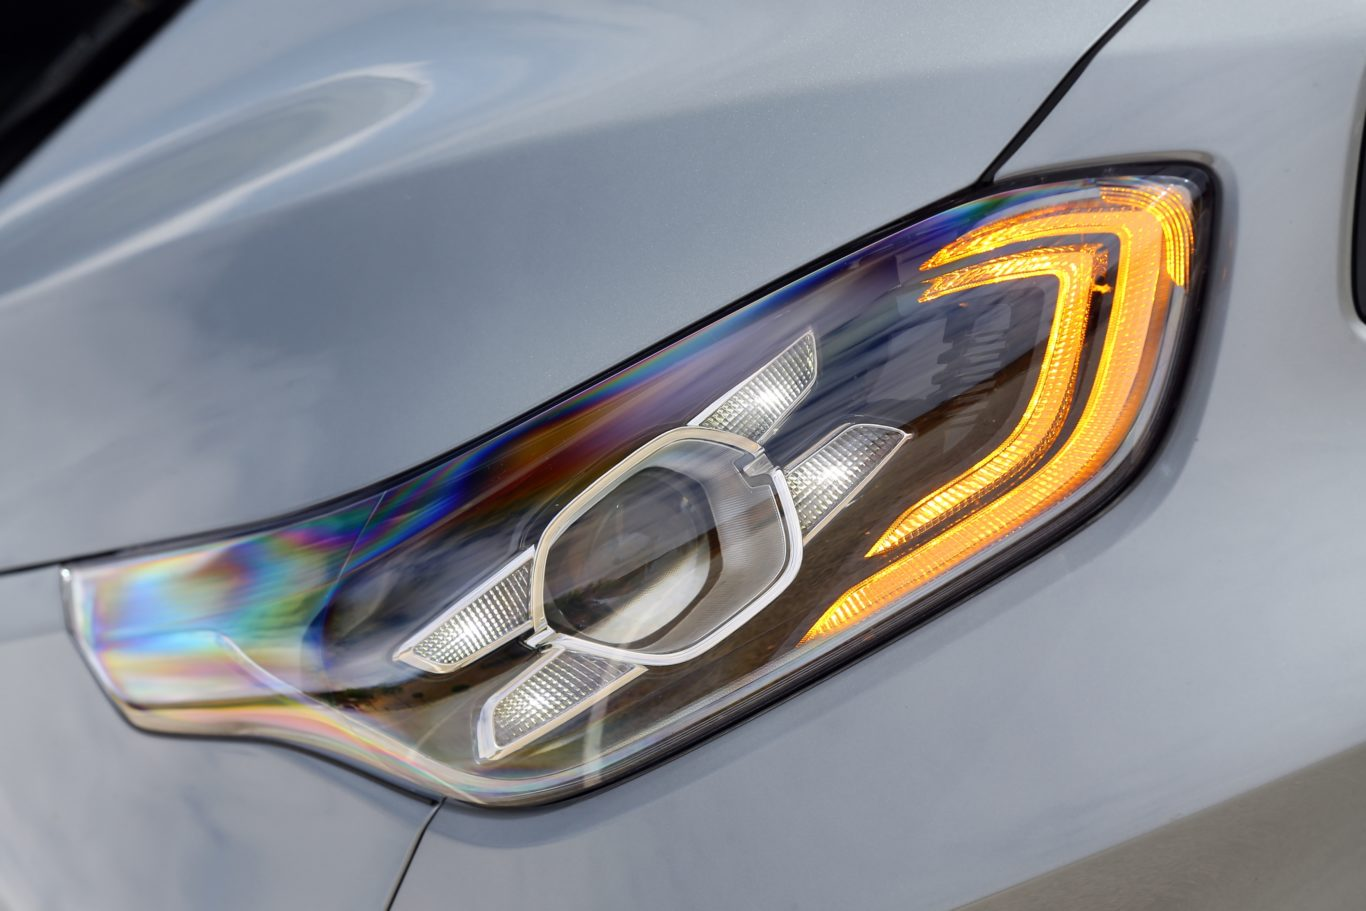 The new Ceed benefits from LED running lights